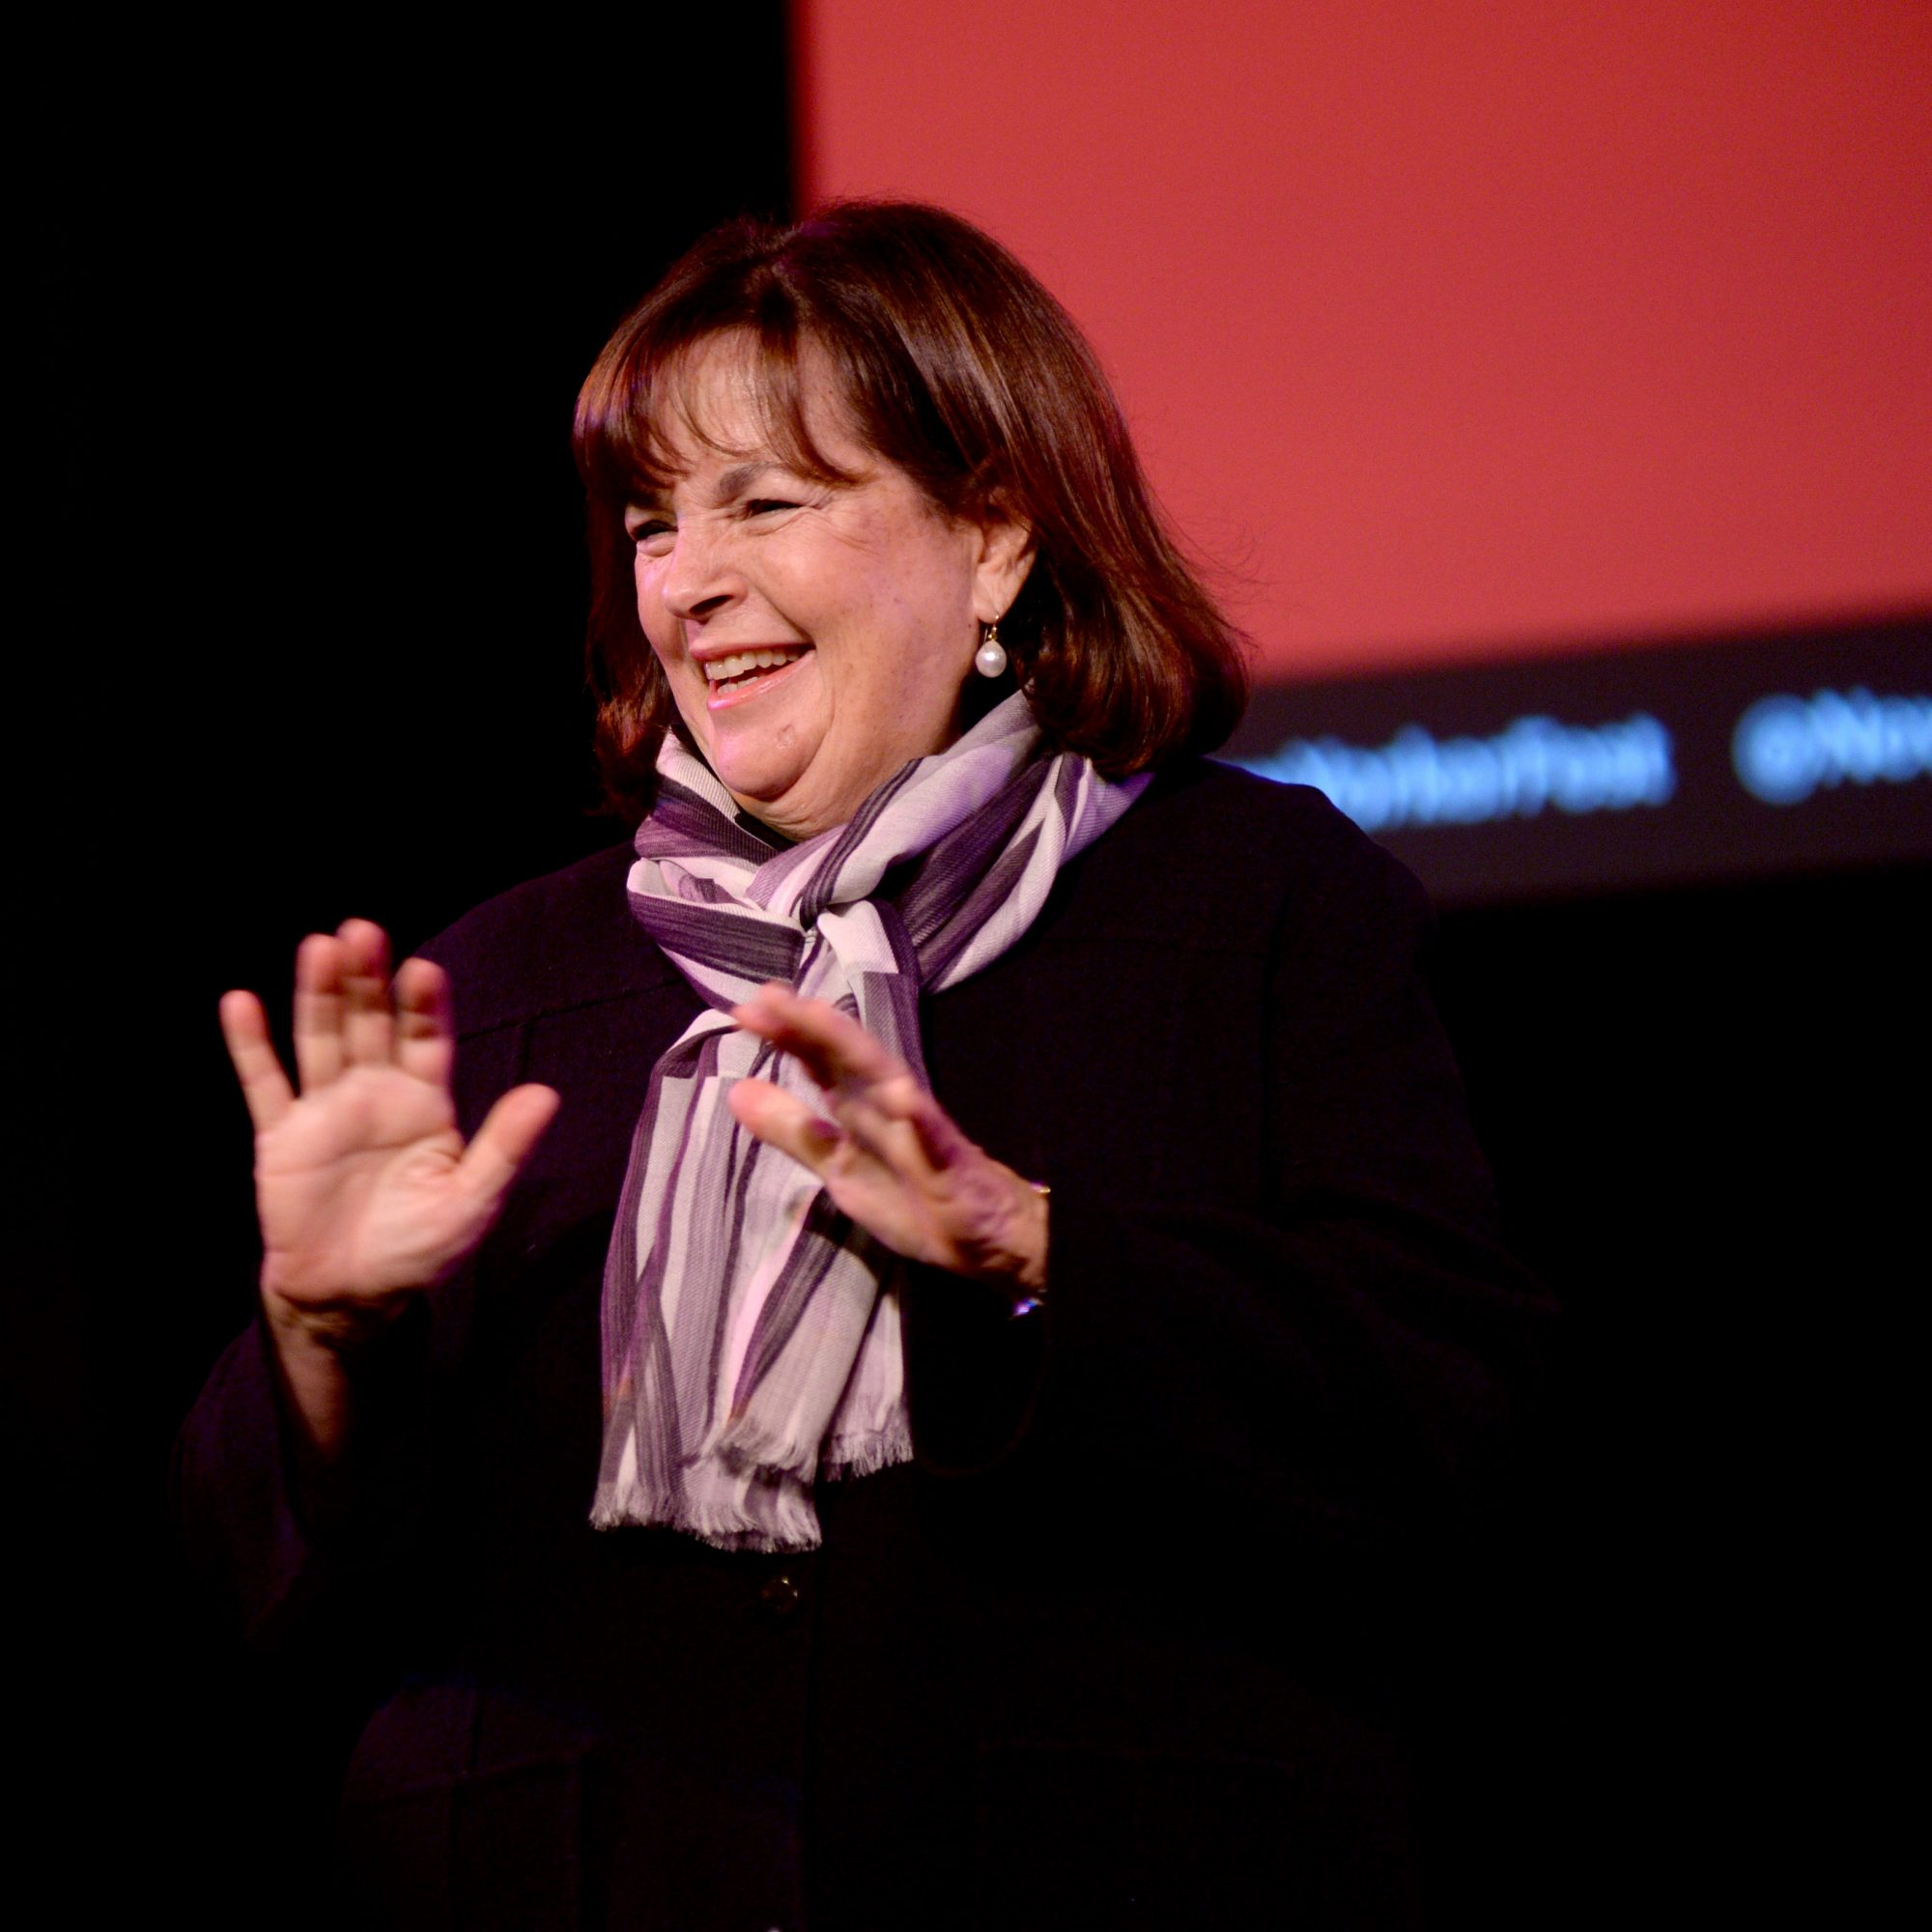 Ina Garten speaking at an event